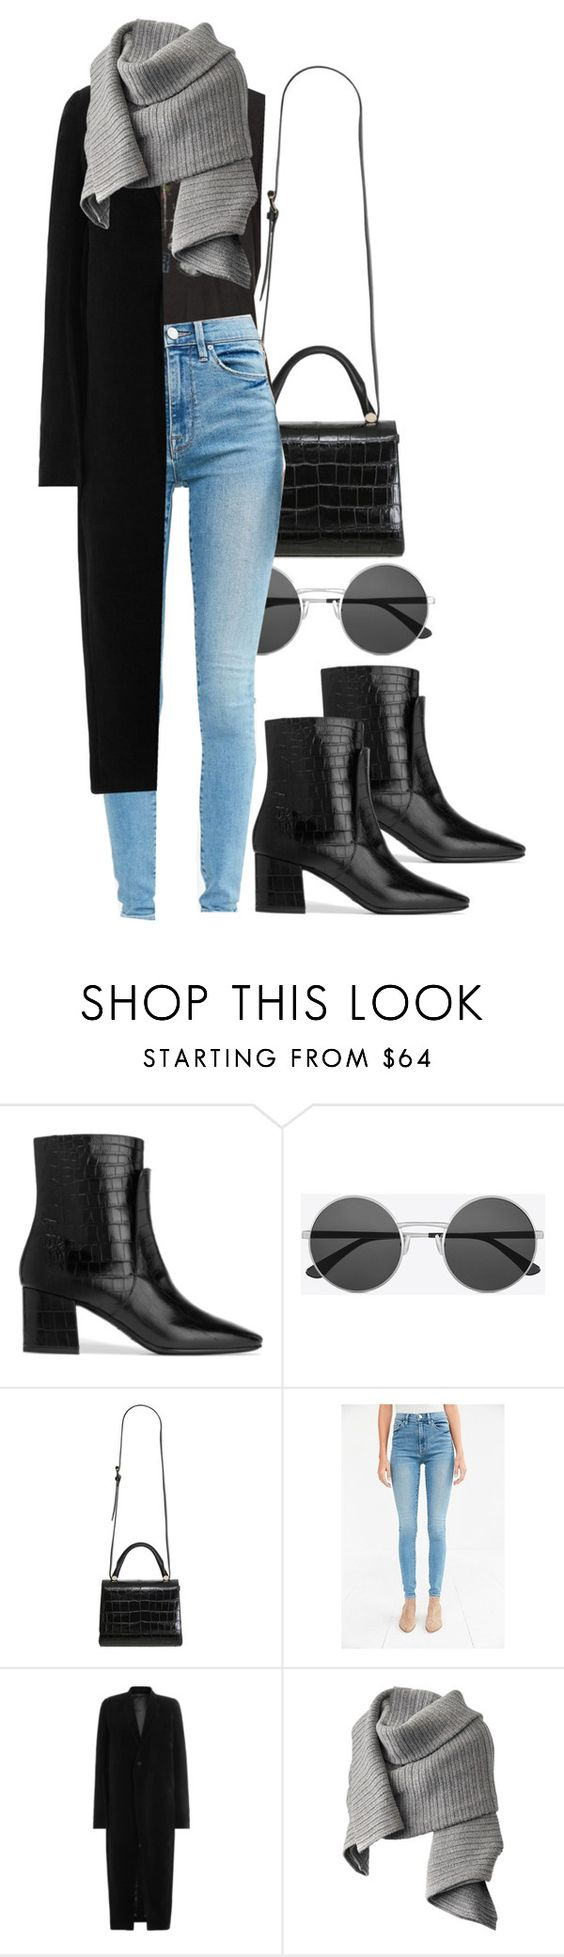 """""""Zeppelin"""" by sincerelyash ❤ liked on Polyvore featuring Givenchy, Yves Saint Laurent, MaxMara, Brandy Melville, BDG, Rick Owens and Acne Studios"""